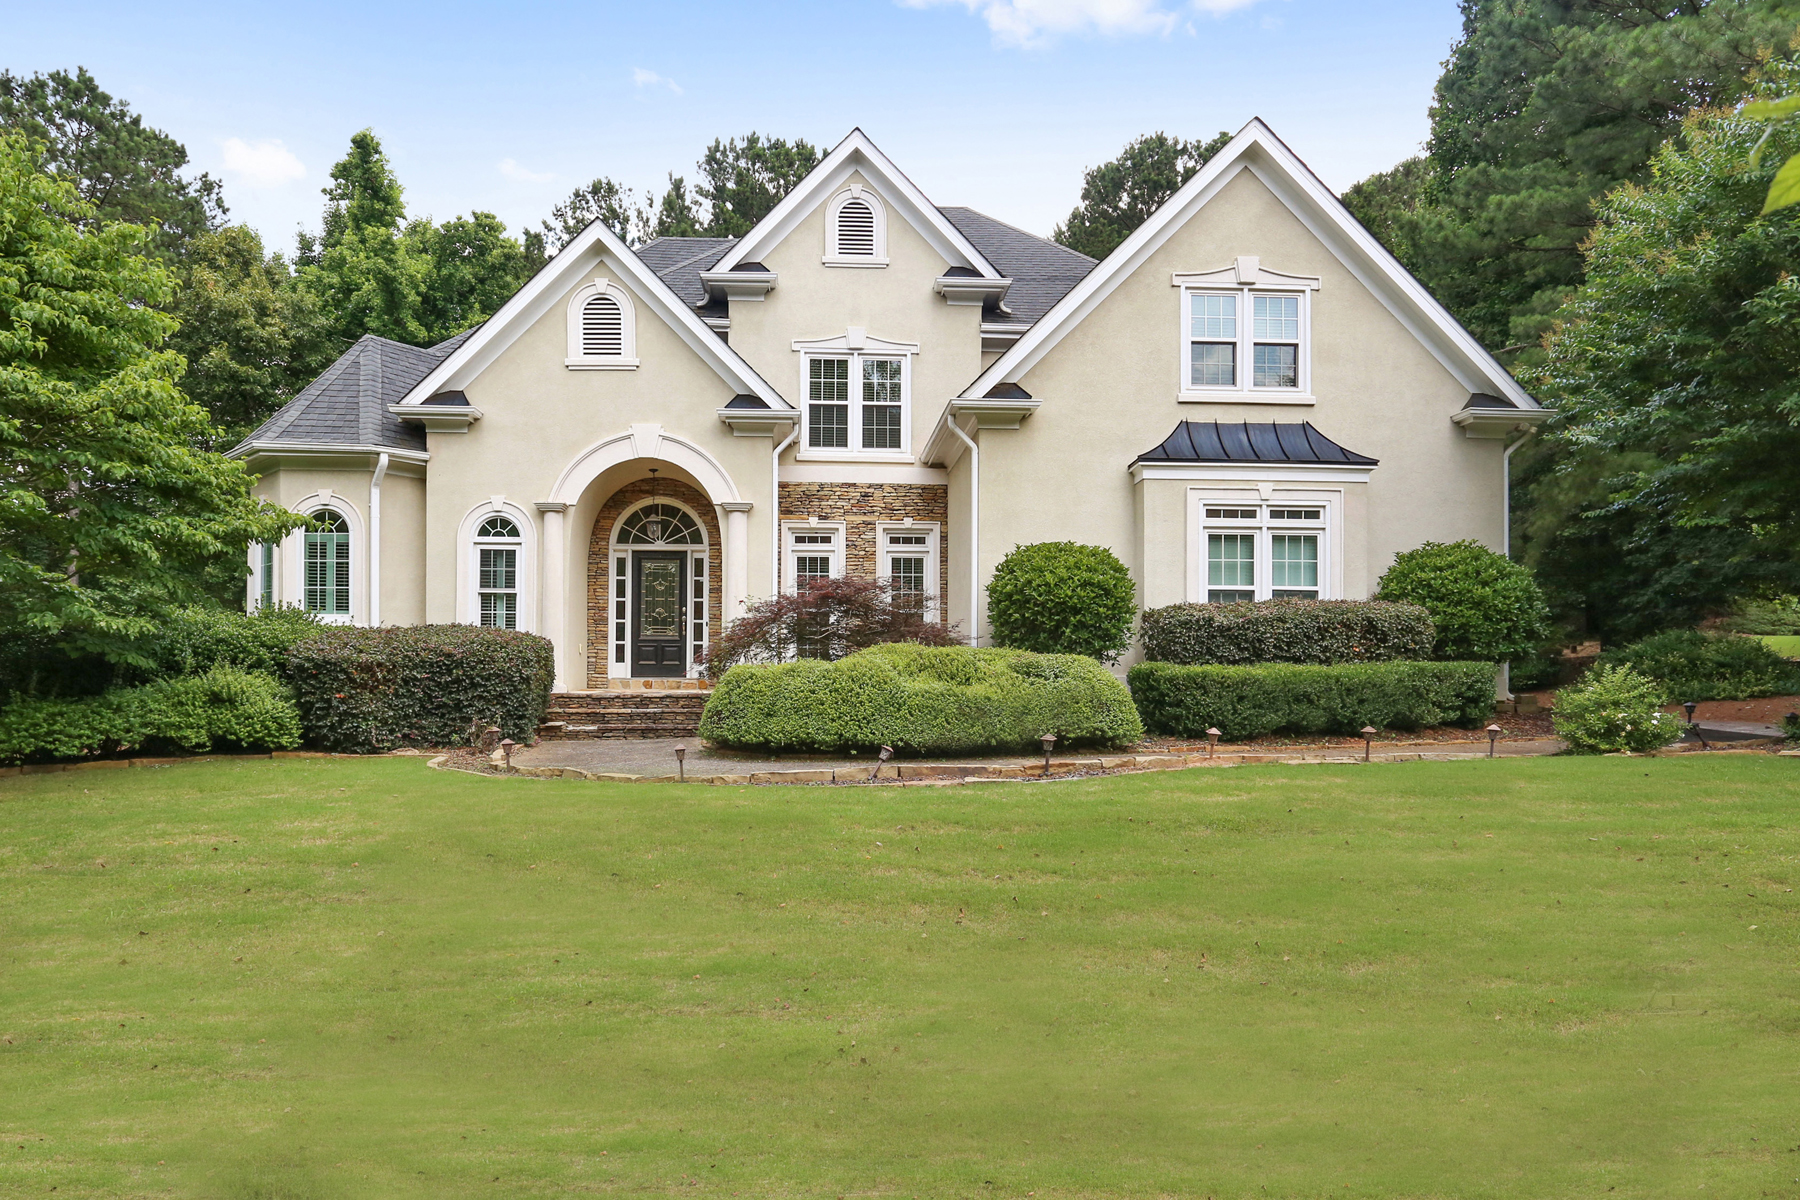 Single Family Home for Sale at Golf Course Views 550 Champions Hills Dr Alpharetta, Georgia 30004 United States